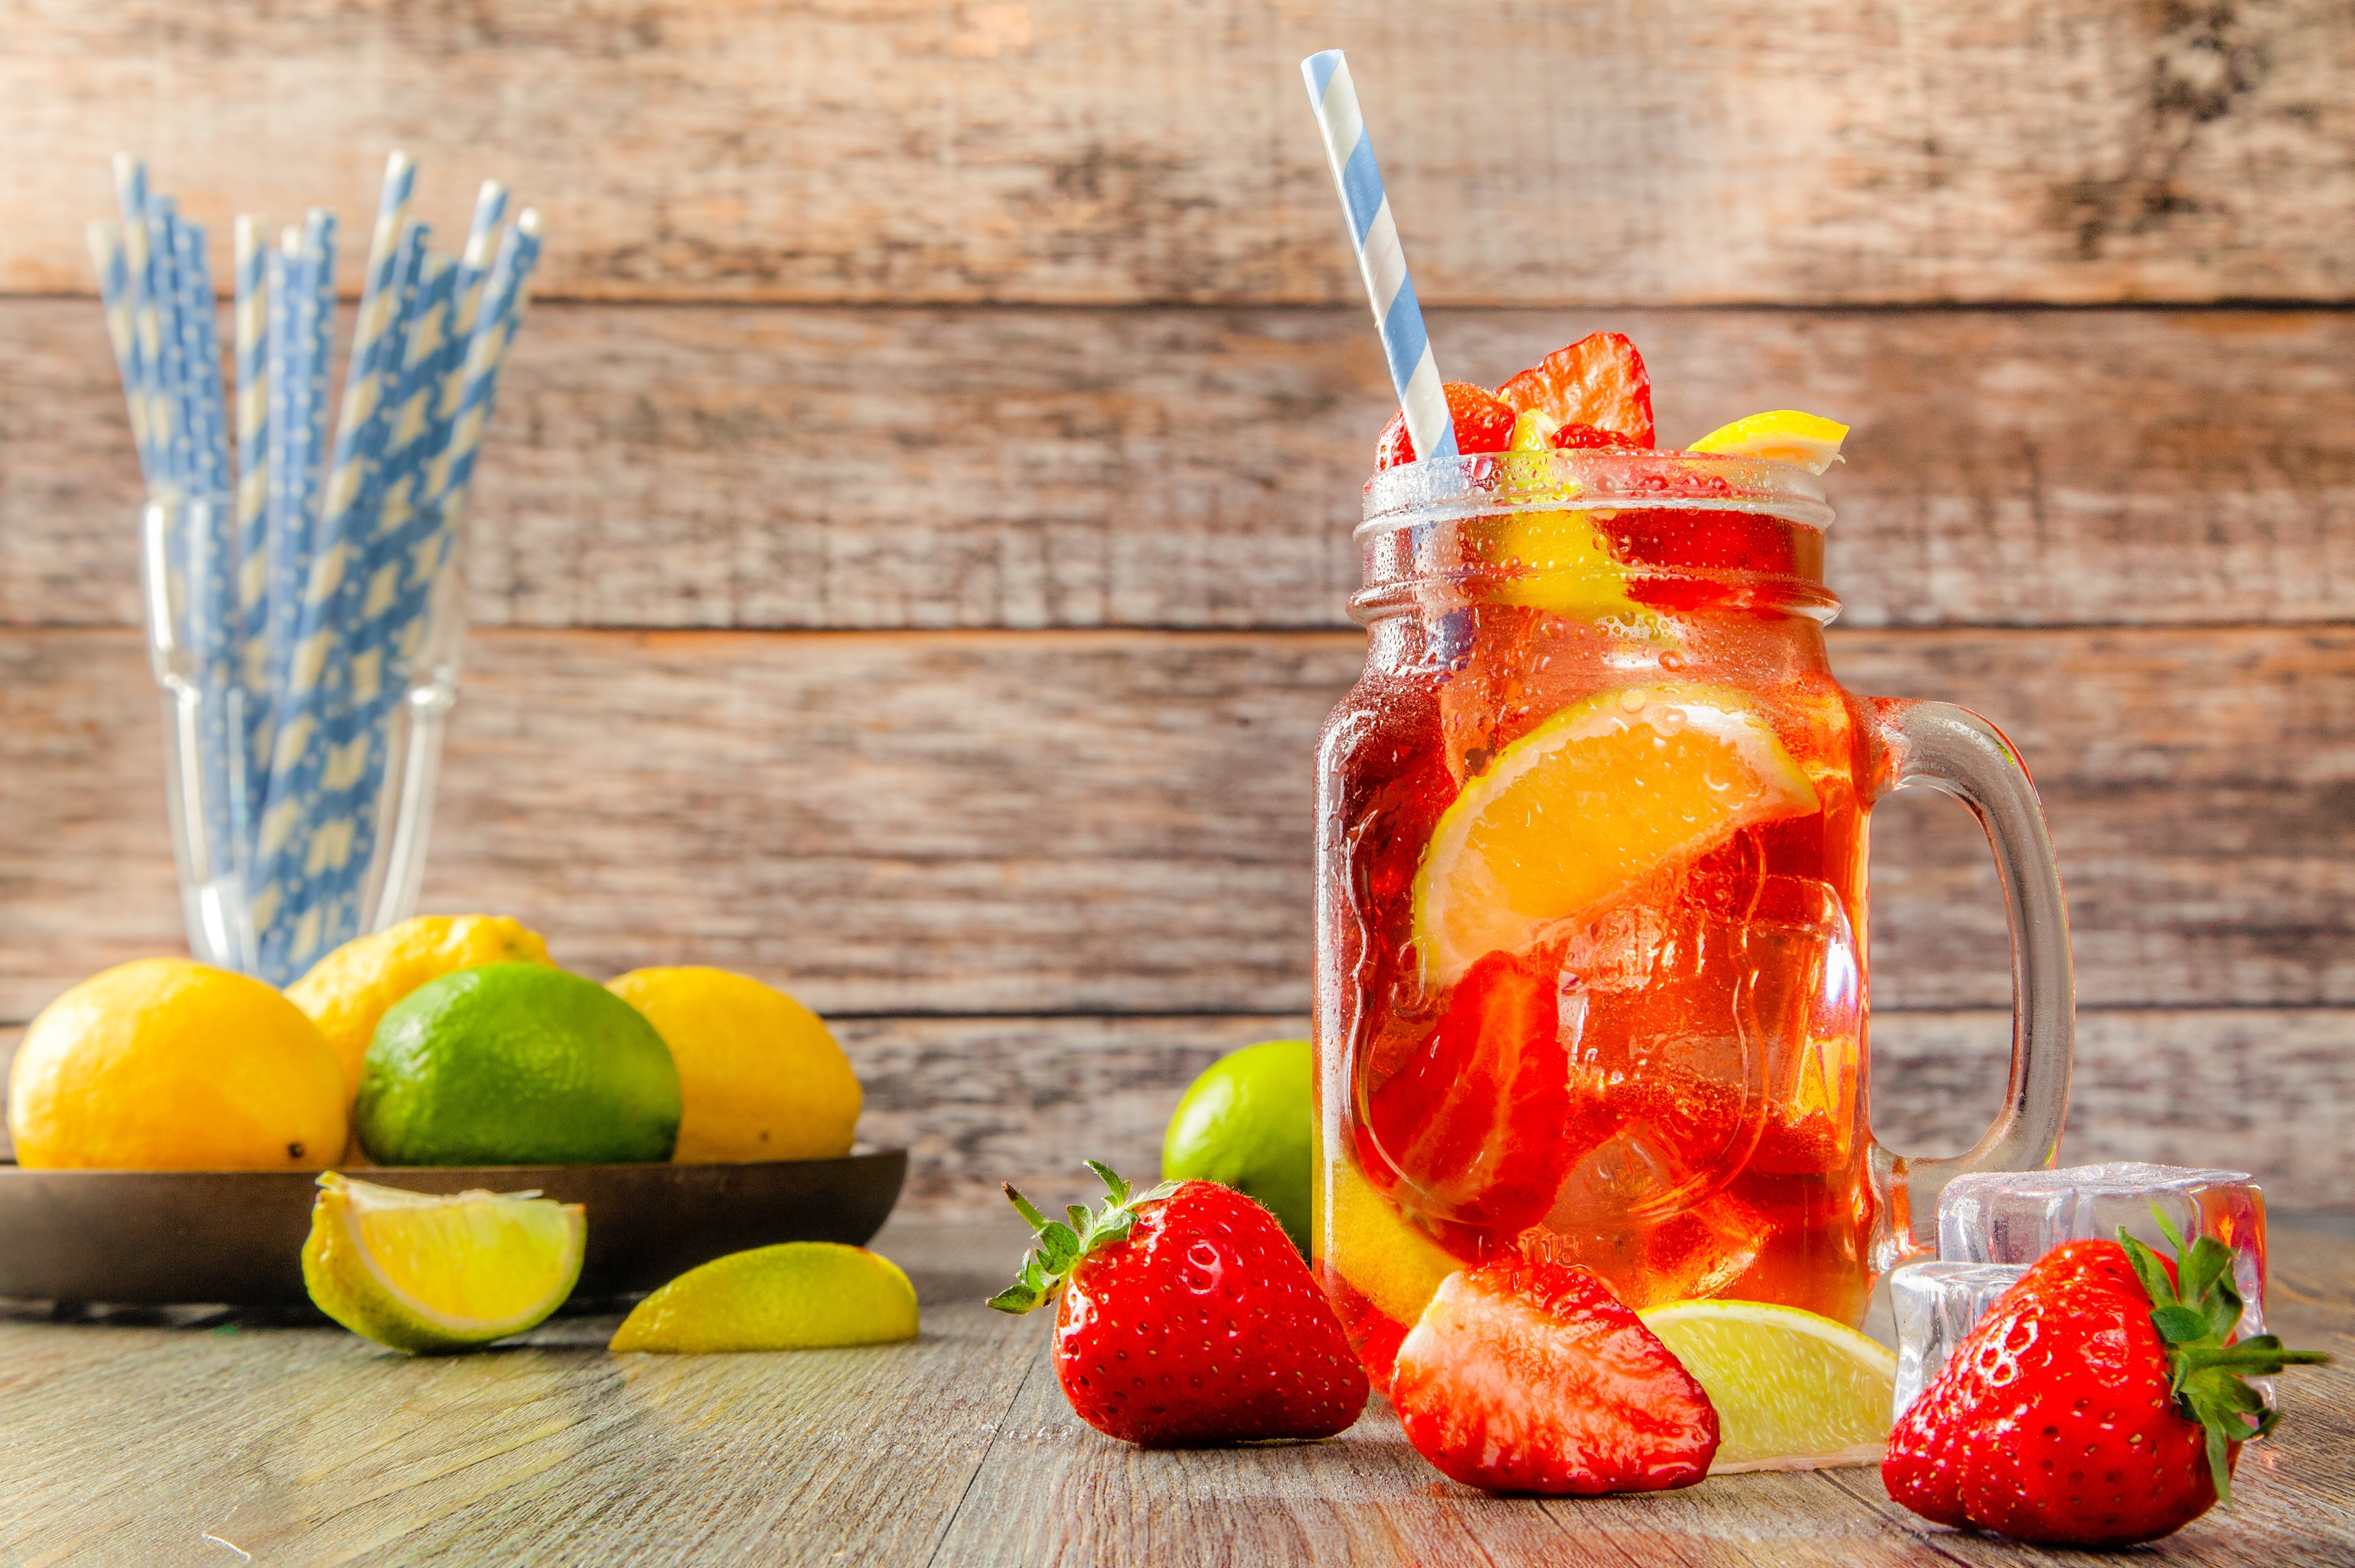 Pictures Lemonade Jar Strawberry Food 3083x2053